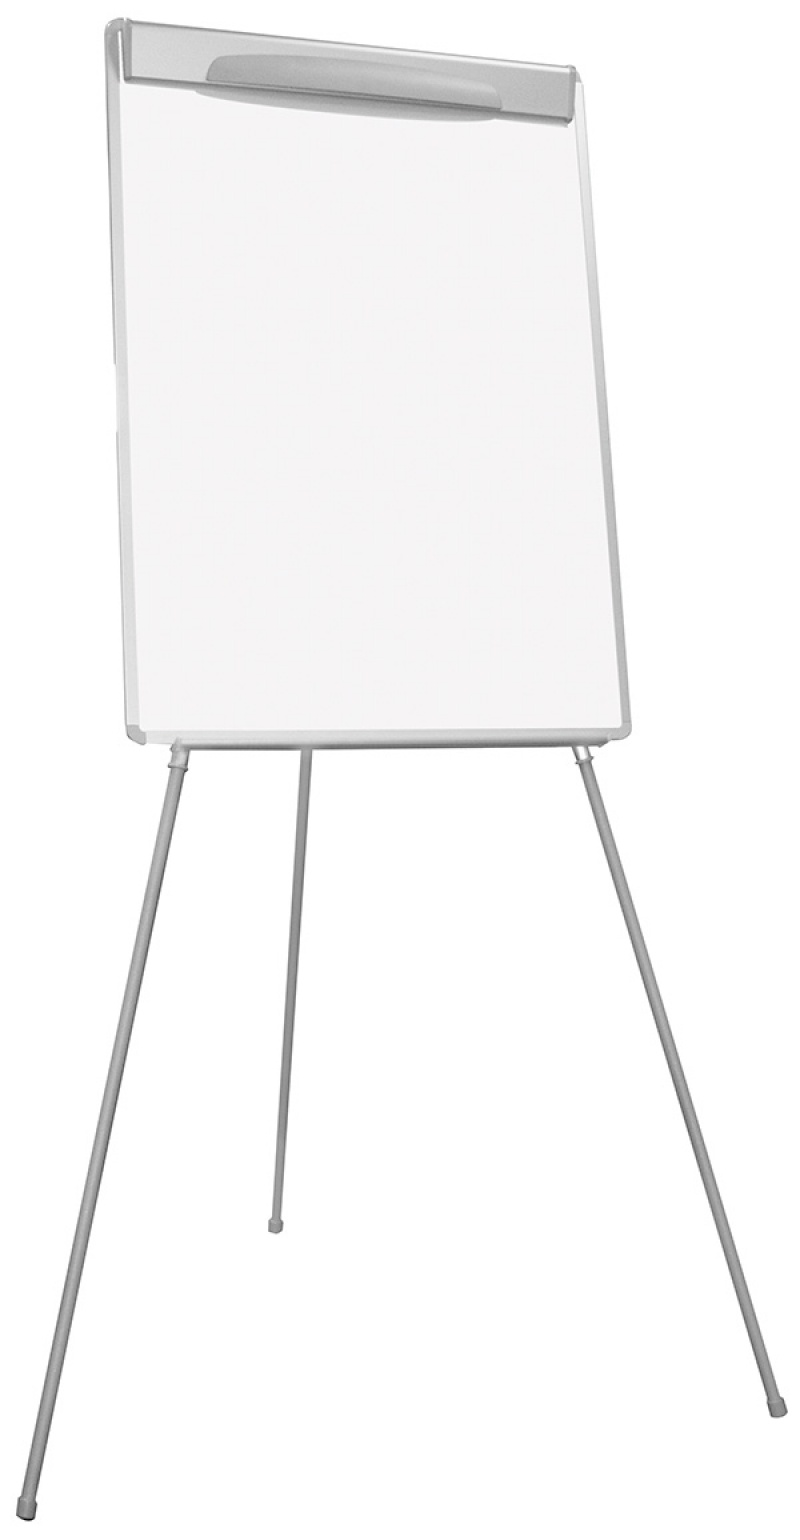 Flipchart Tripod Easel BI-OFFICE, 70x102cm, Magnetic Dry-wipe Board, with an Extending Display Arm